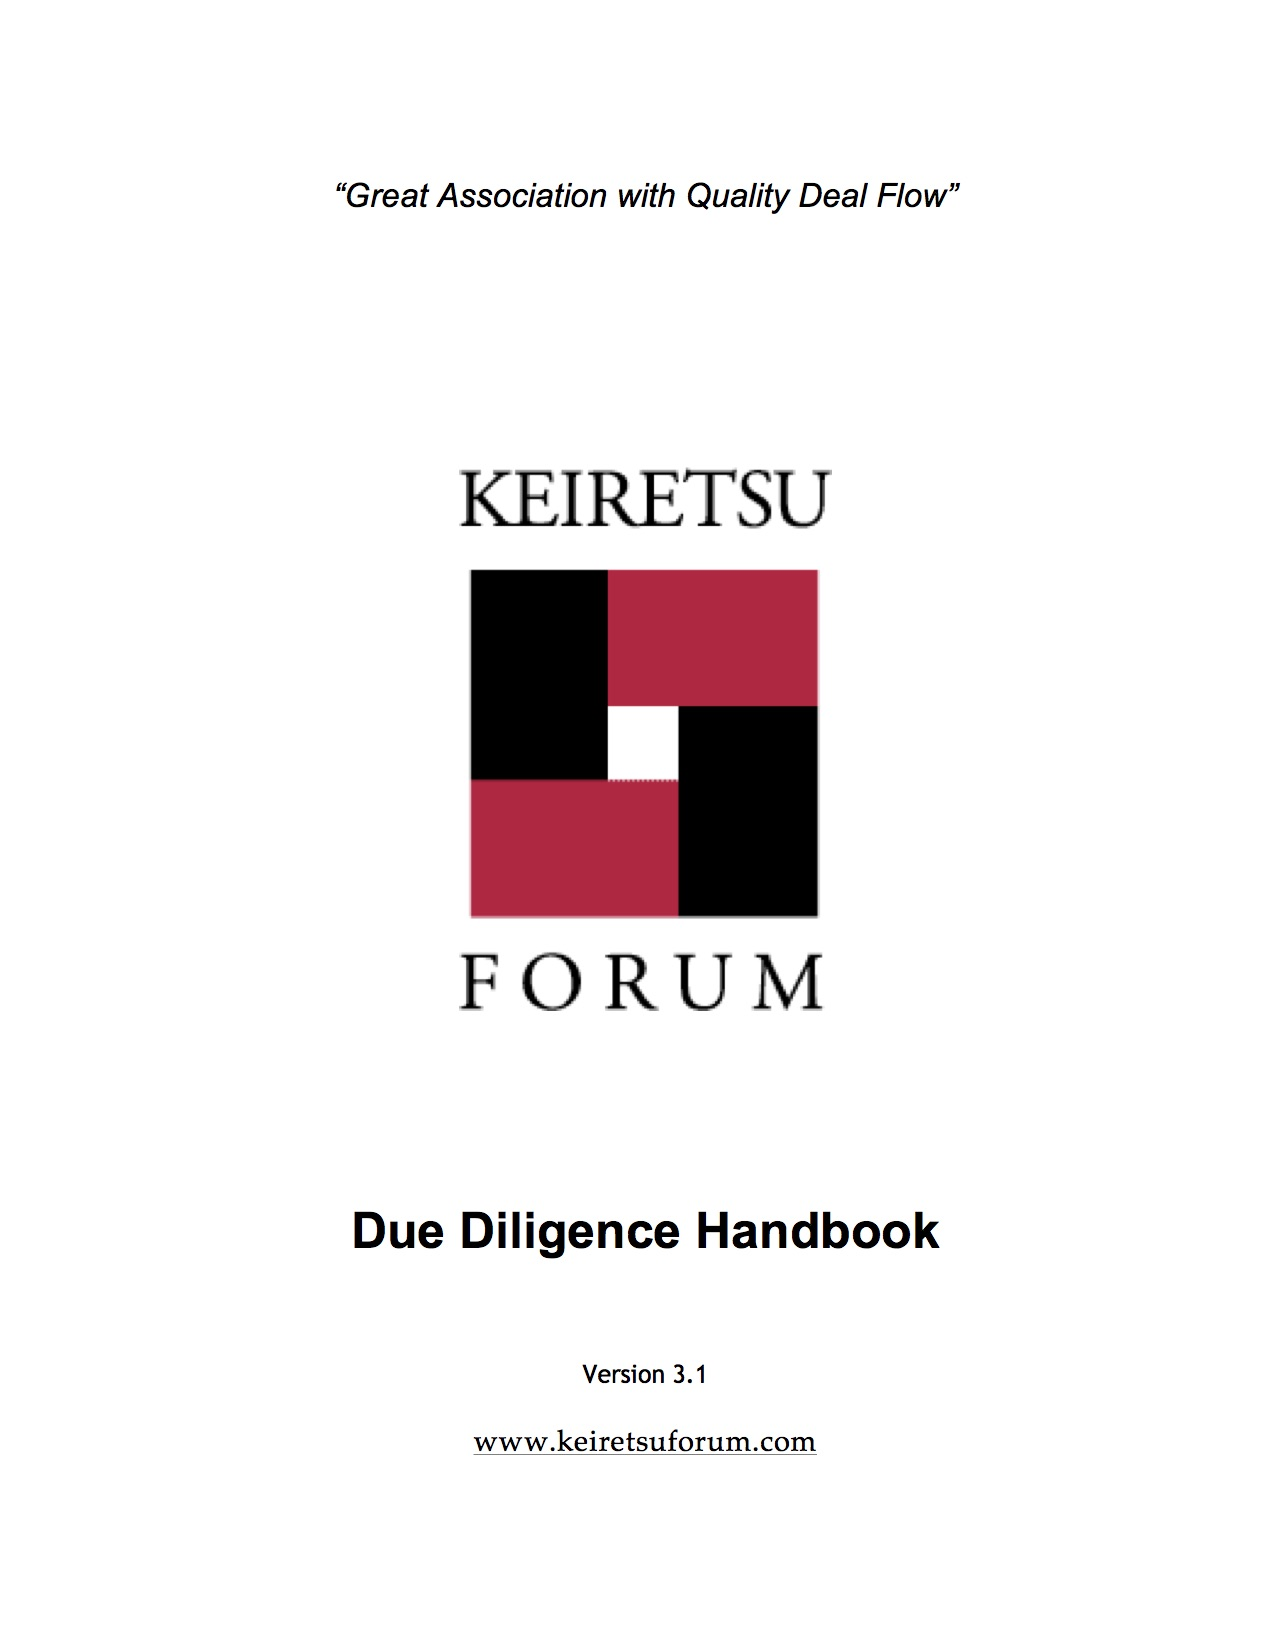 Keiretsu-Forum-DD-Handbook-Version-3.1-due-diligence